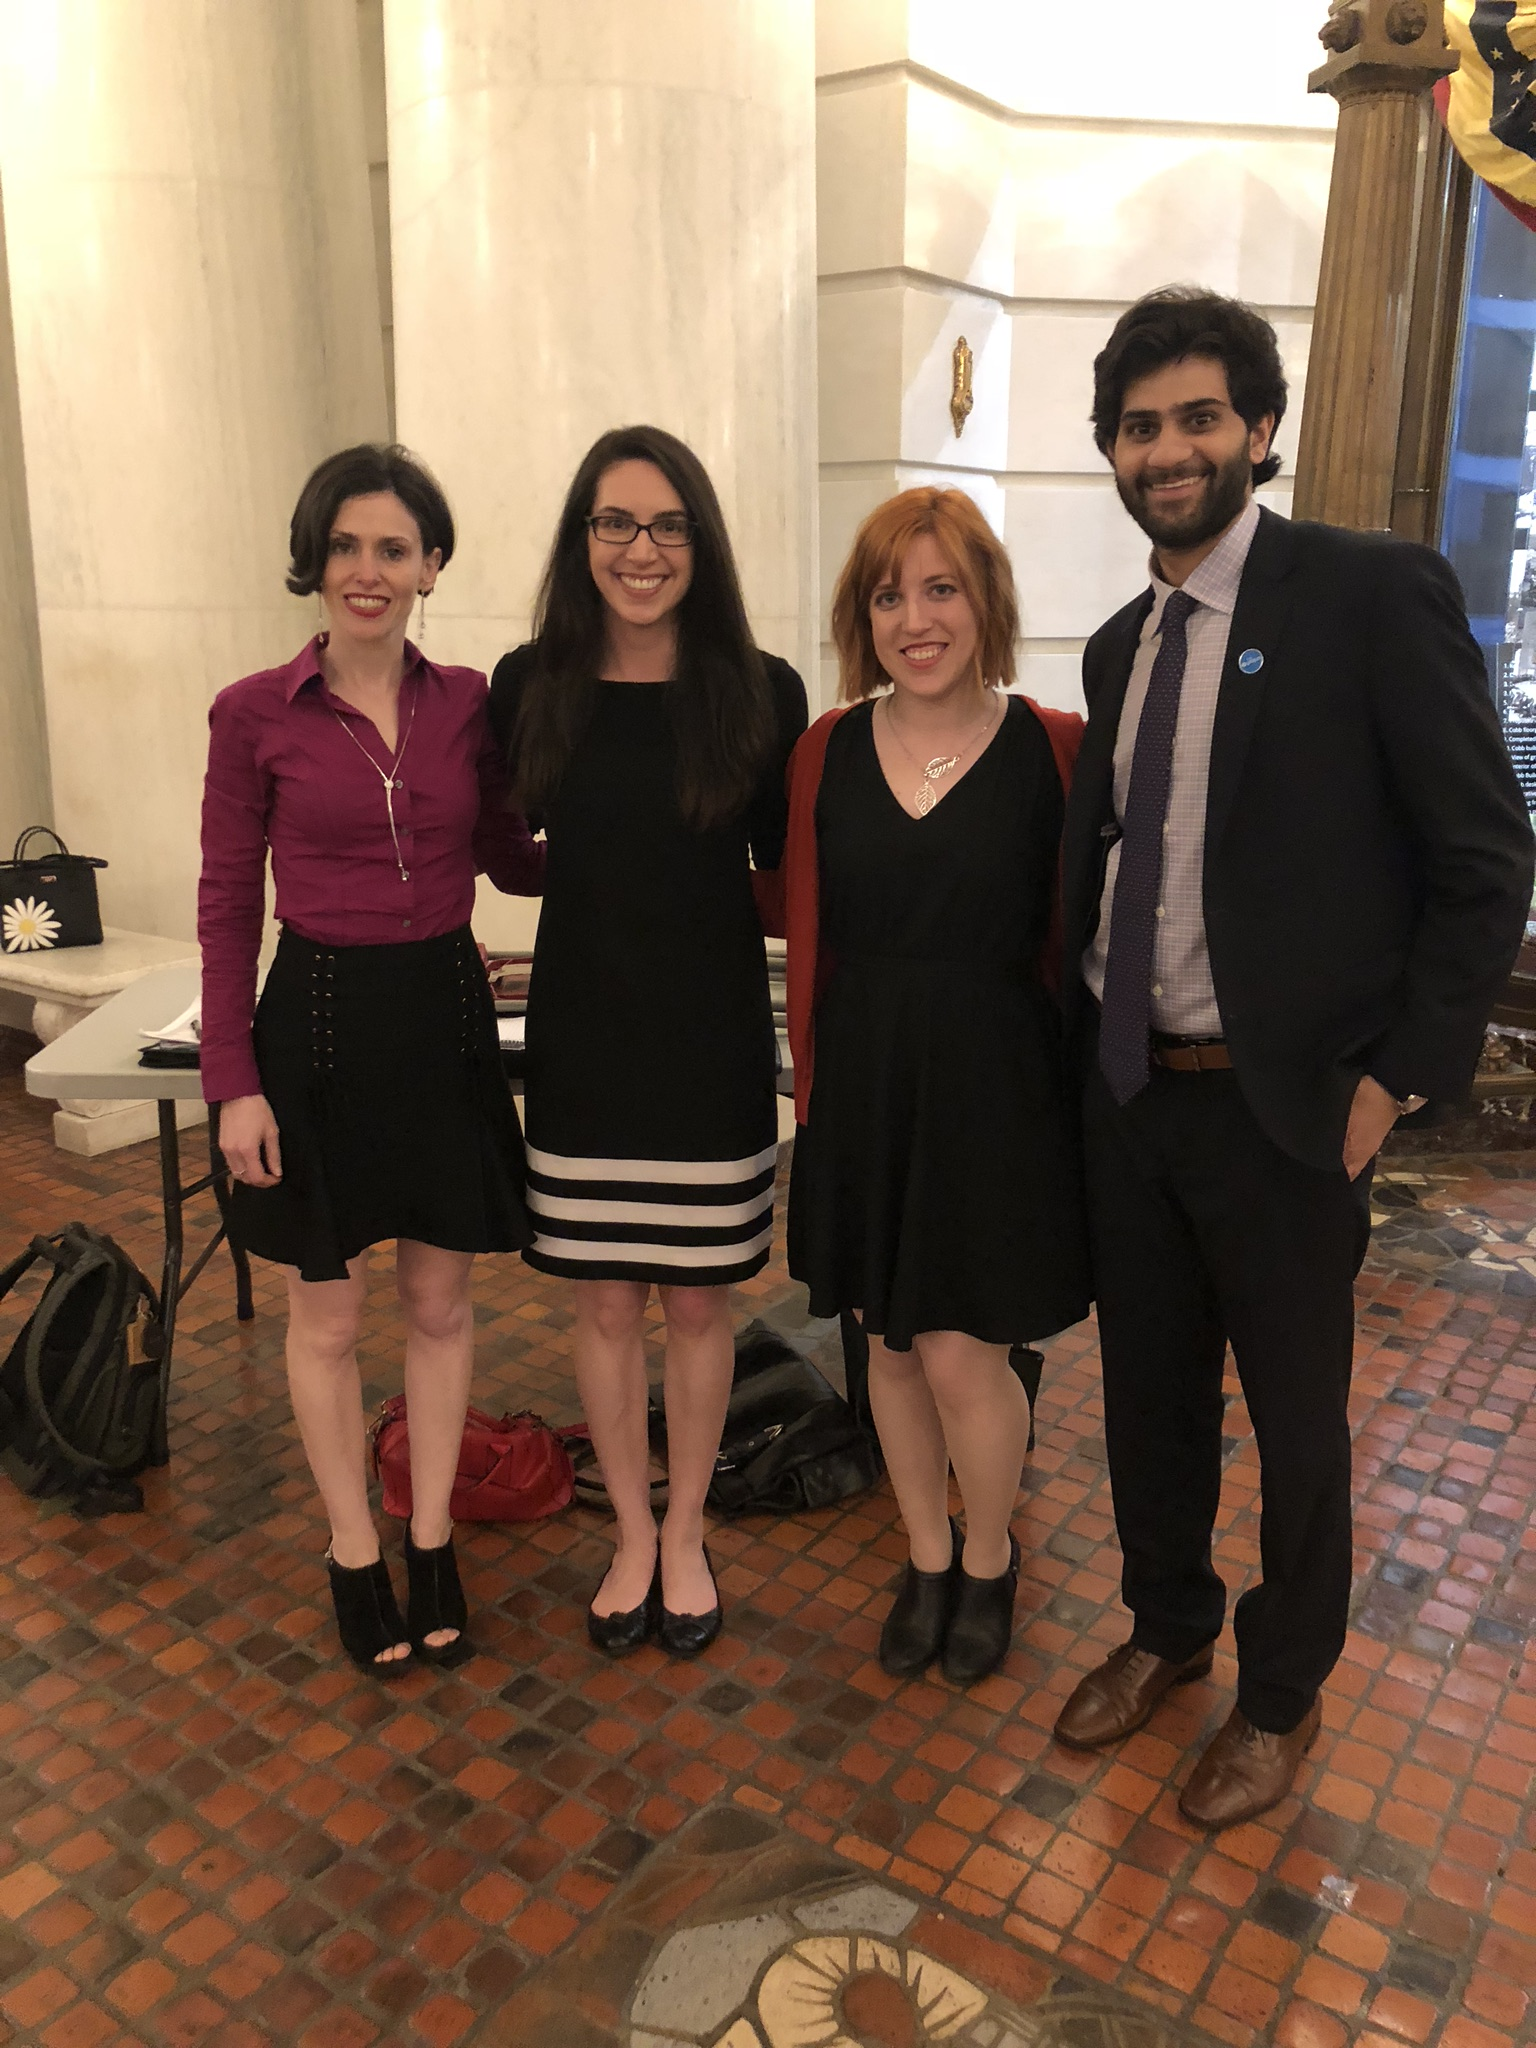 Fraidy Reiss, Sabrina Moldt, Alexandra Boyer Coffey, and Curan Mehra in Harrisburg, PA , © UNICEF/Curan Mehra